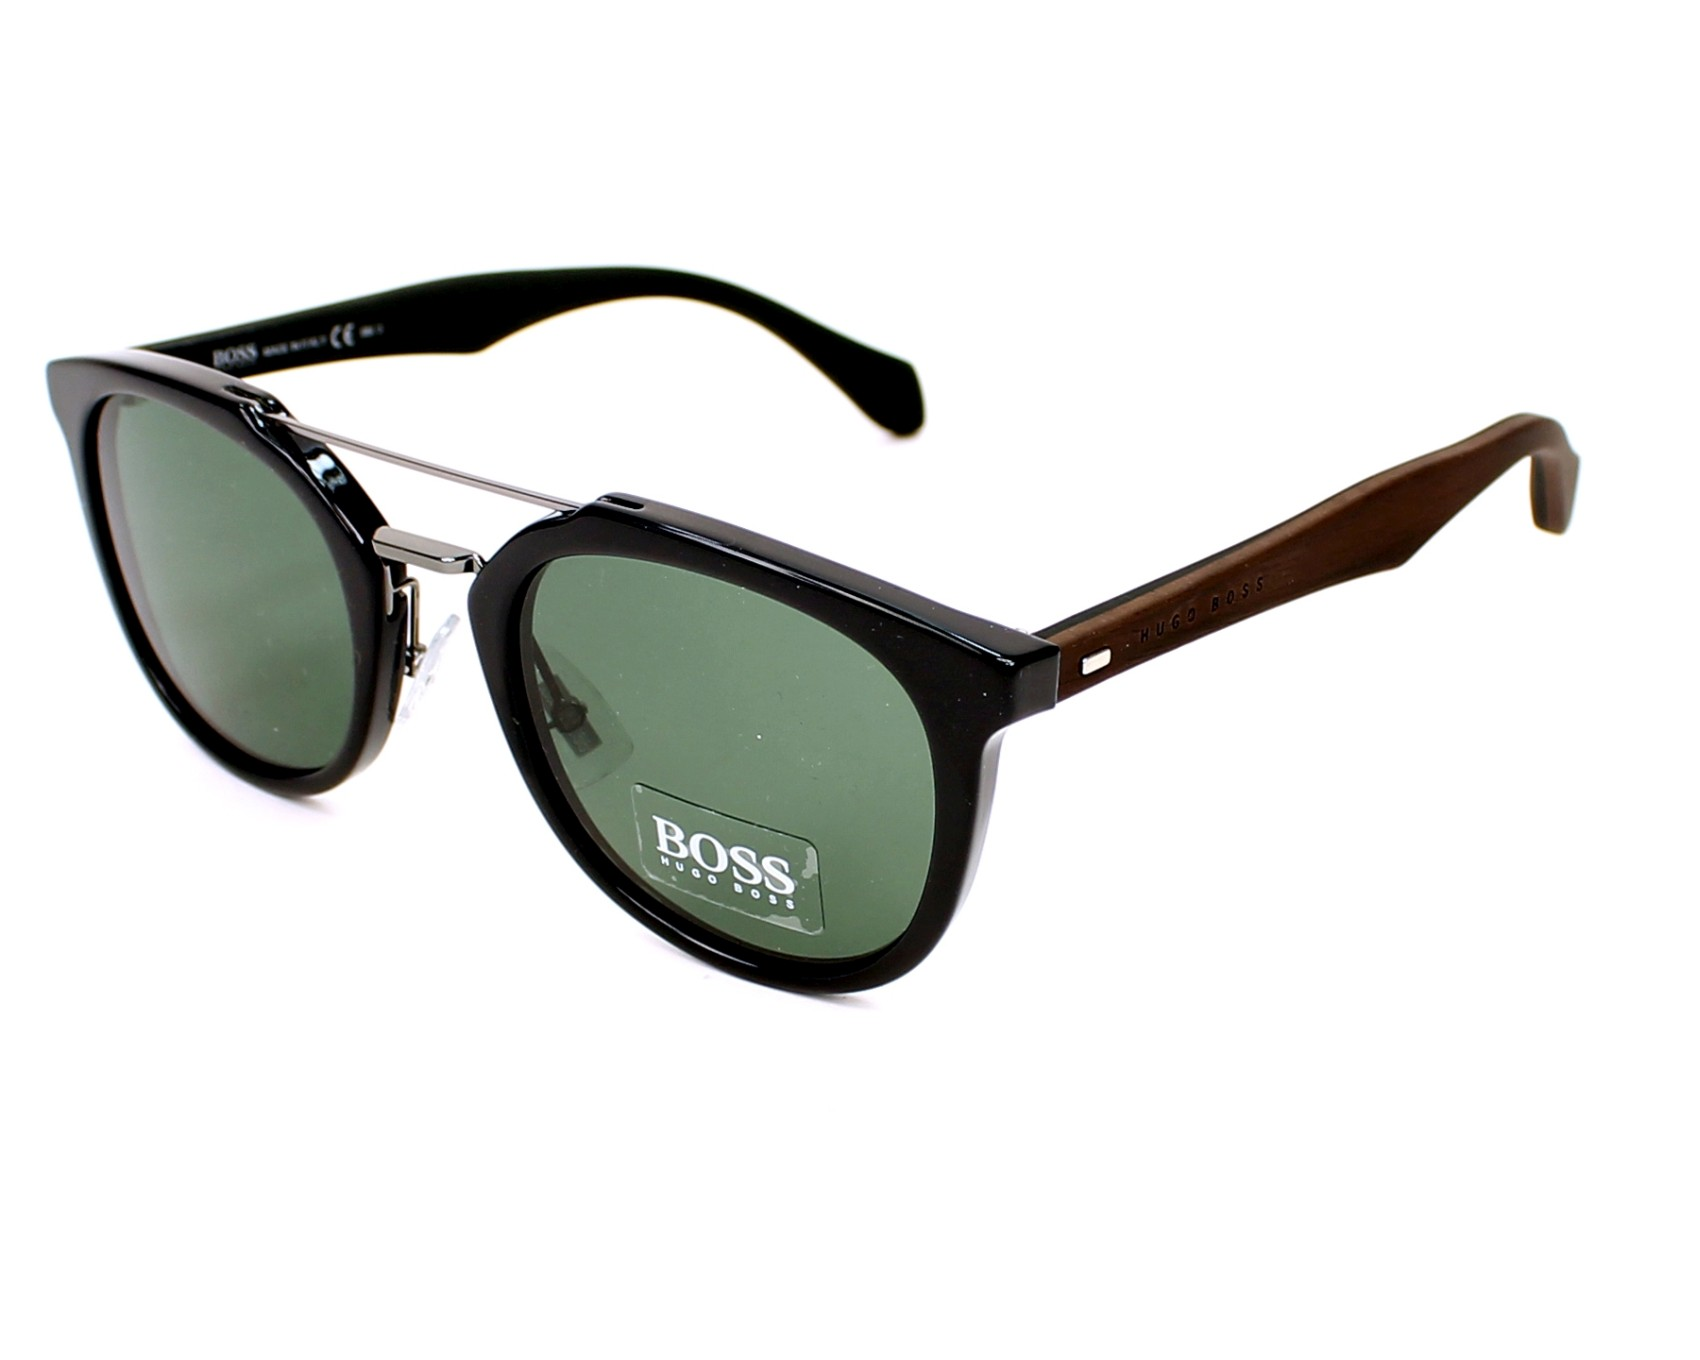 a310b909c9222 Hugo Boss - Buy Hugo Boss sunglasses online at low prices